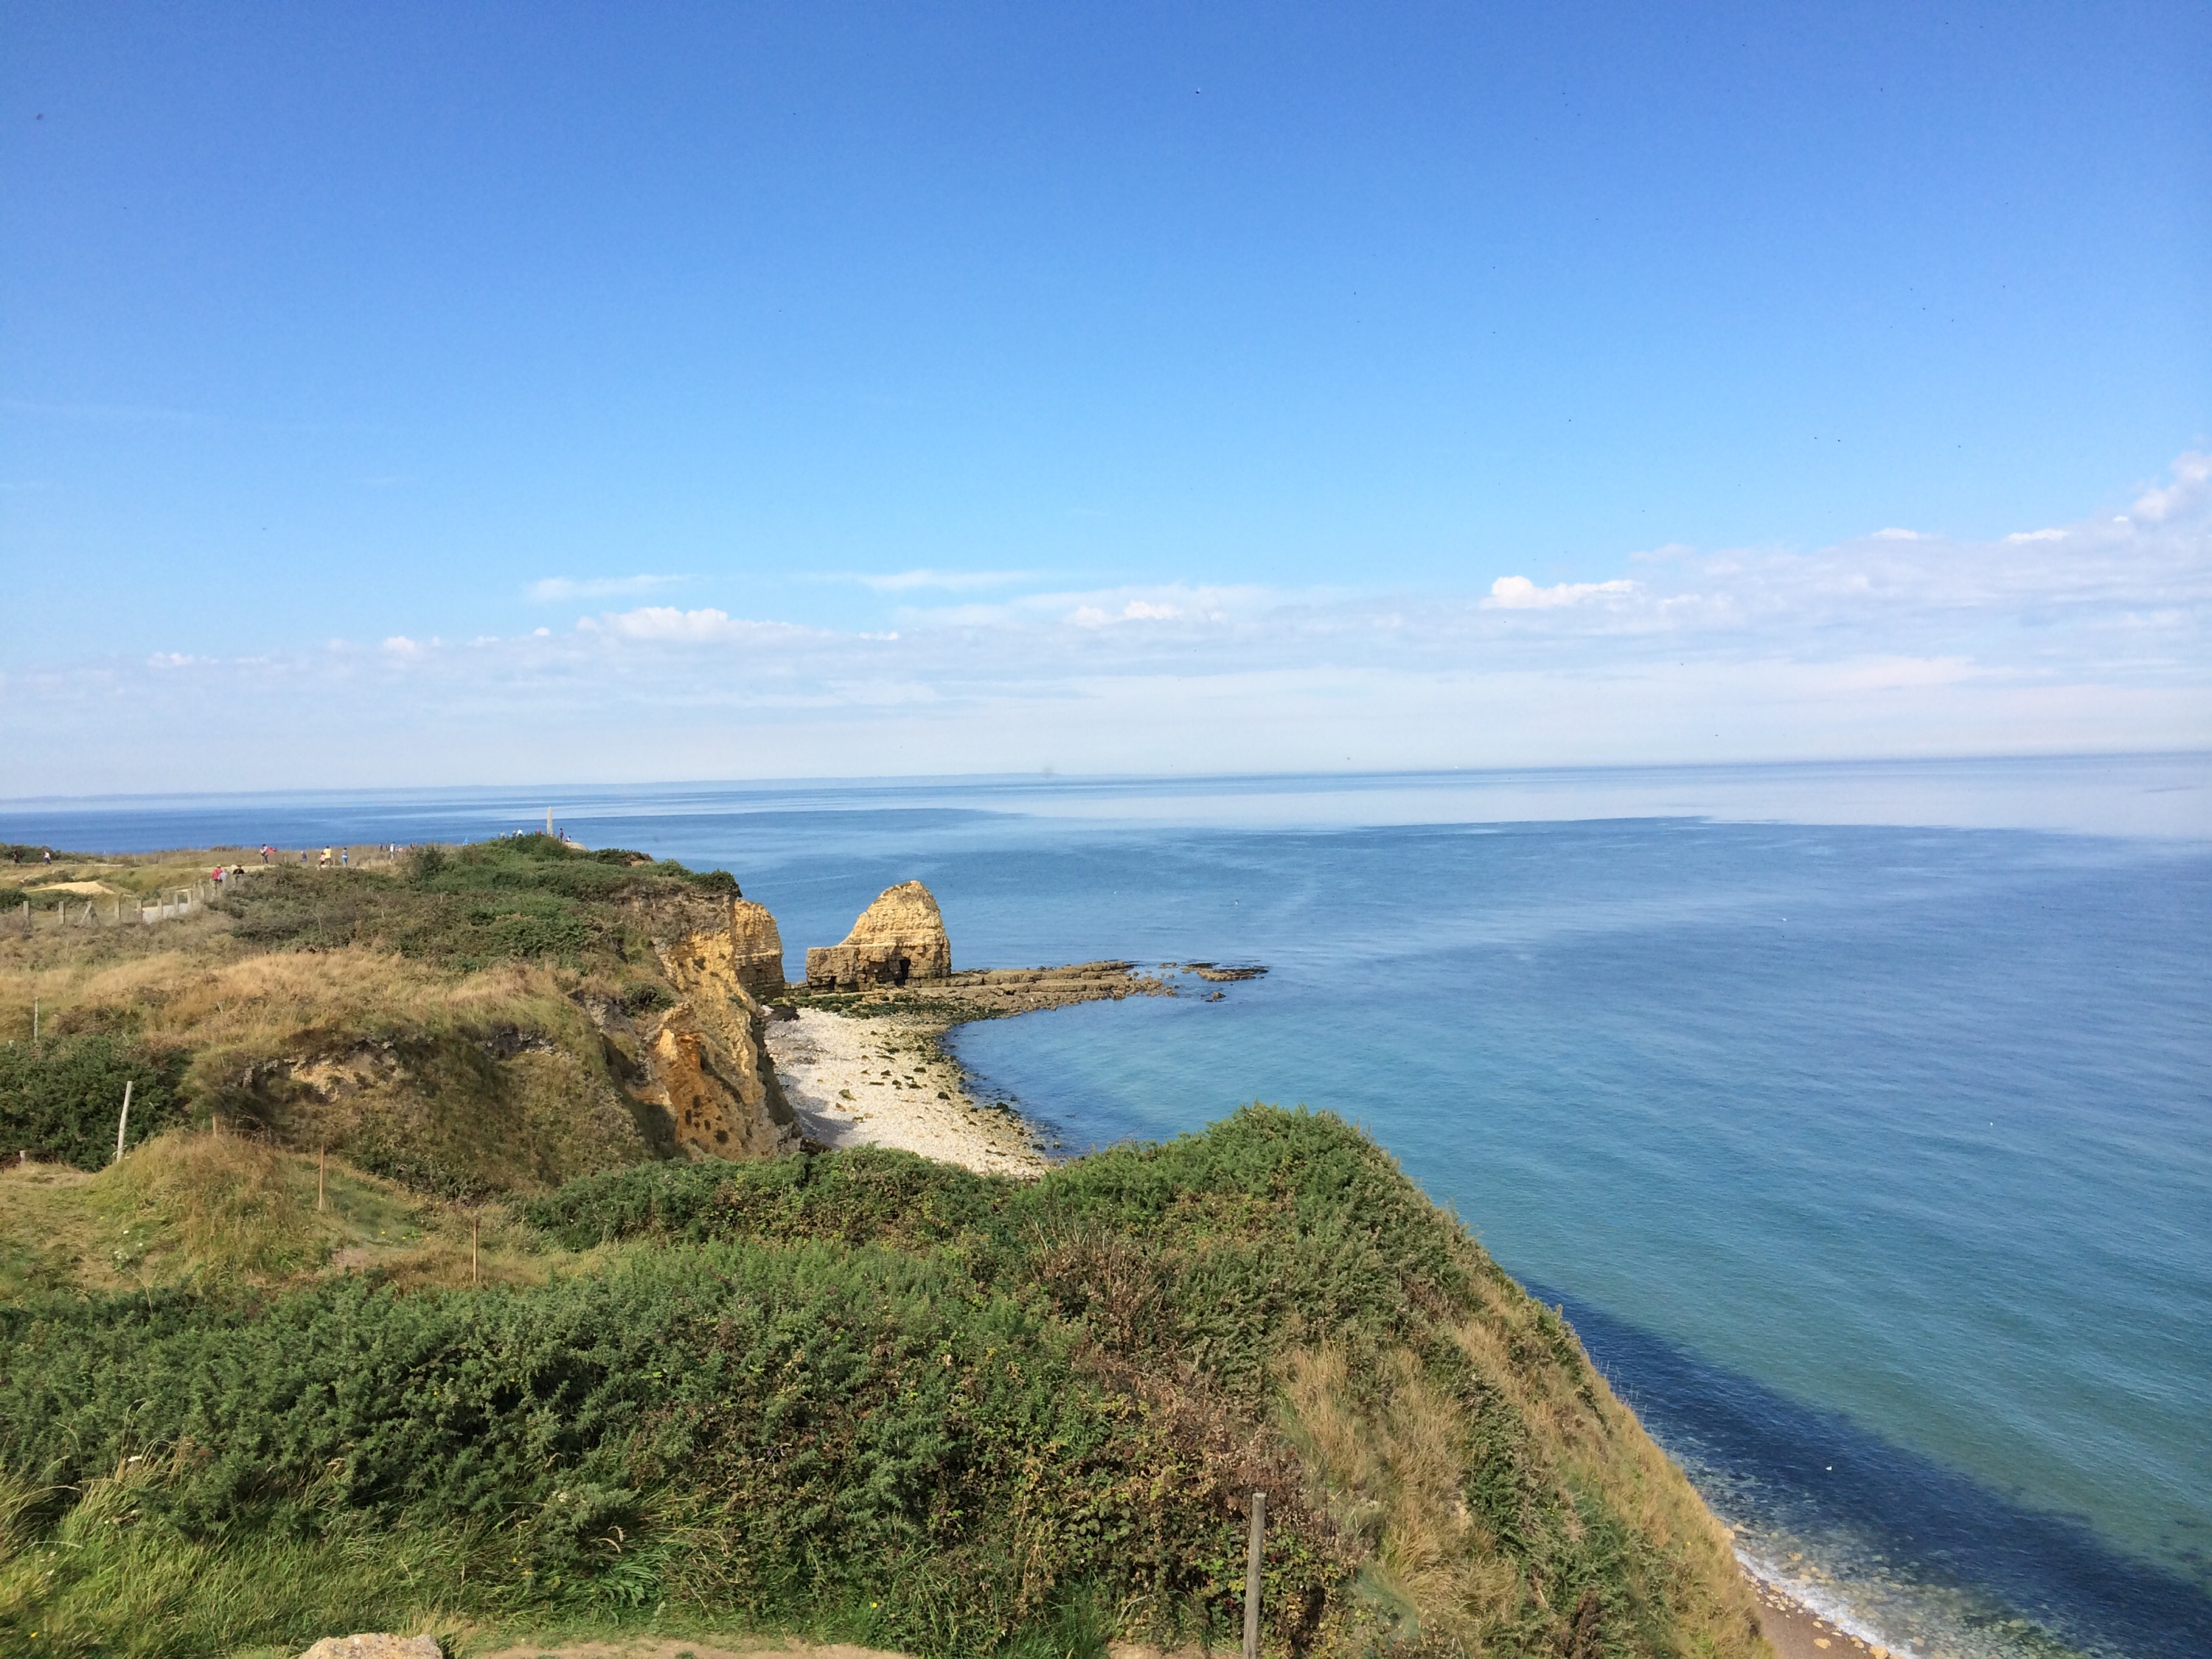 Pointe du Hoc, Normandië